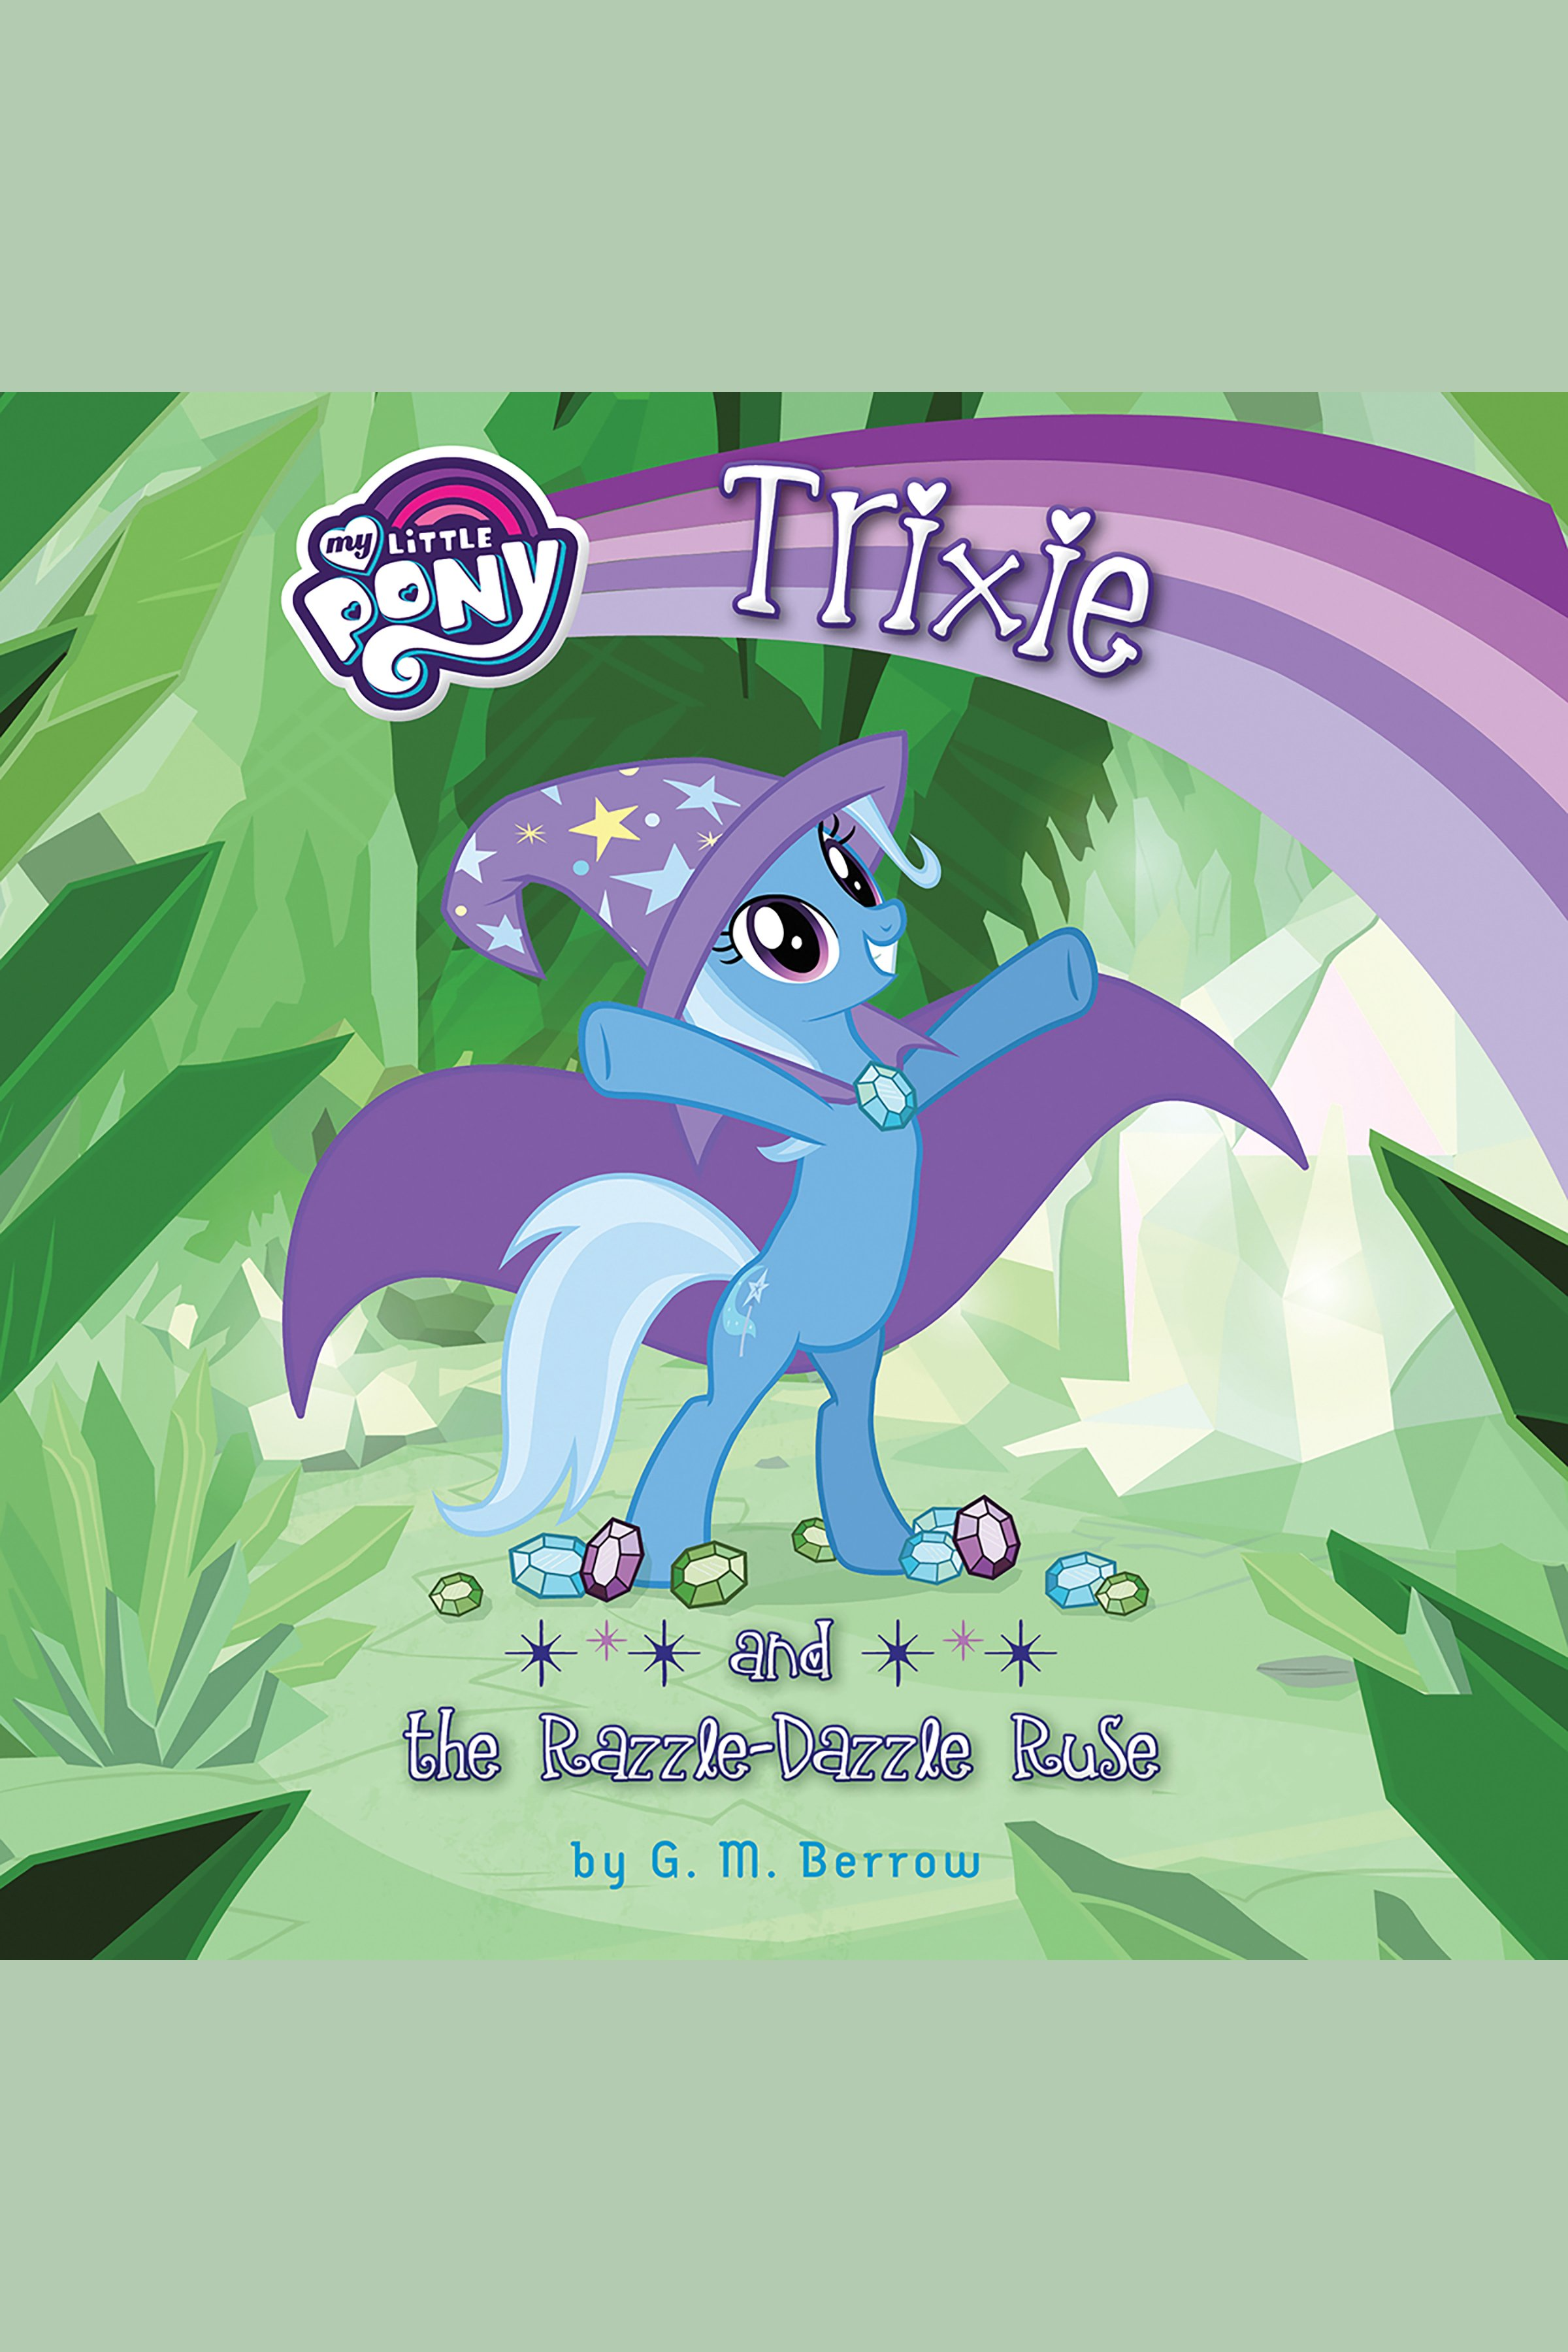 The trouble with Trixie cover image